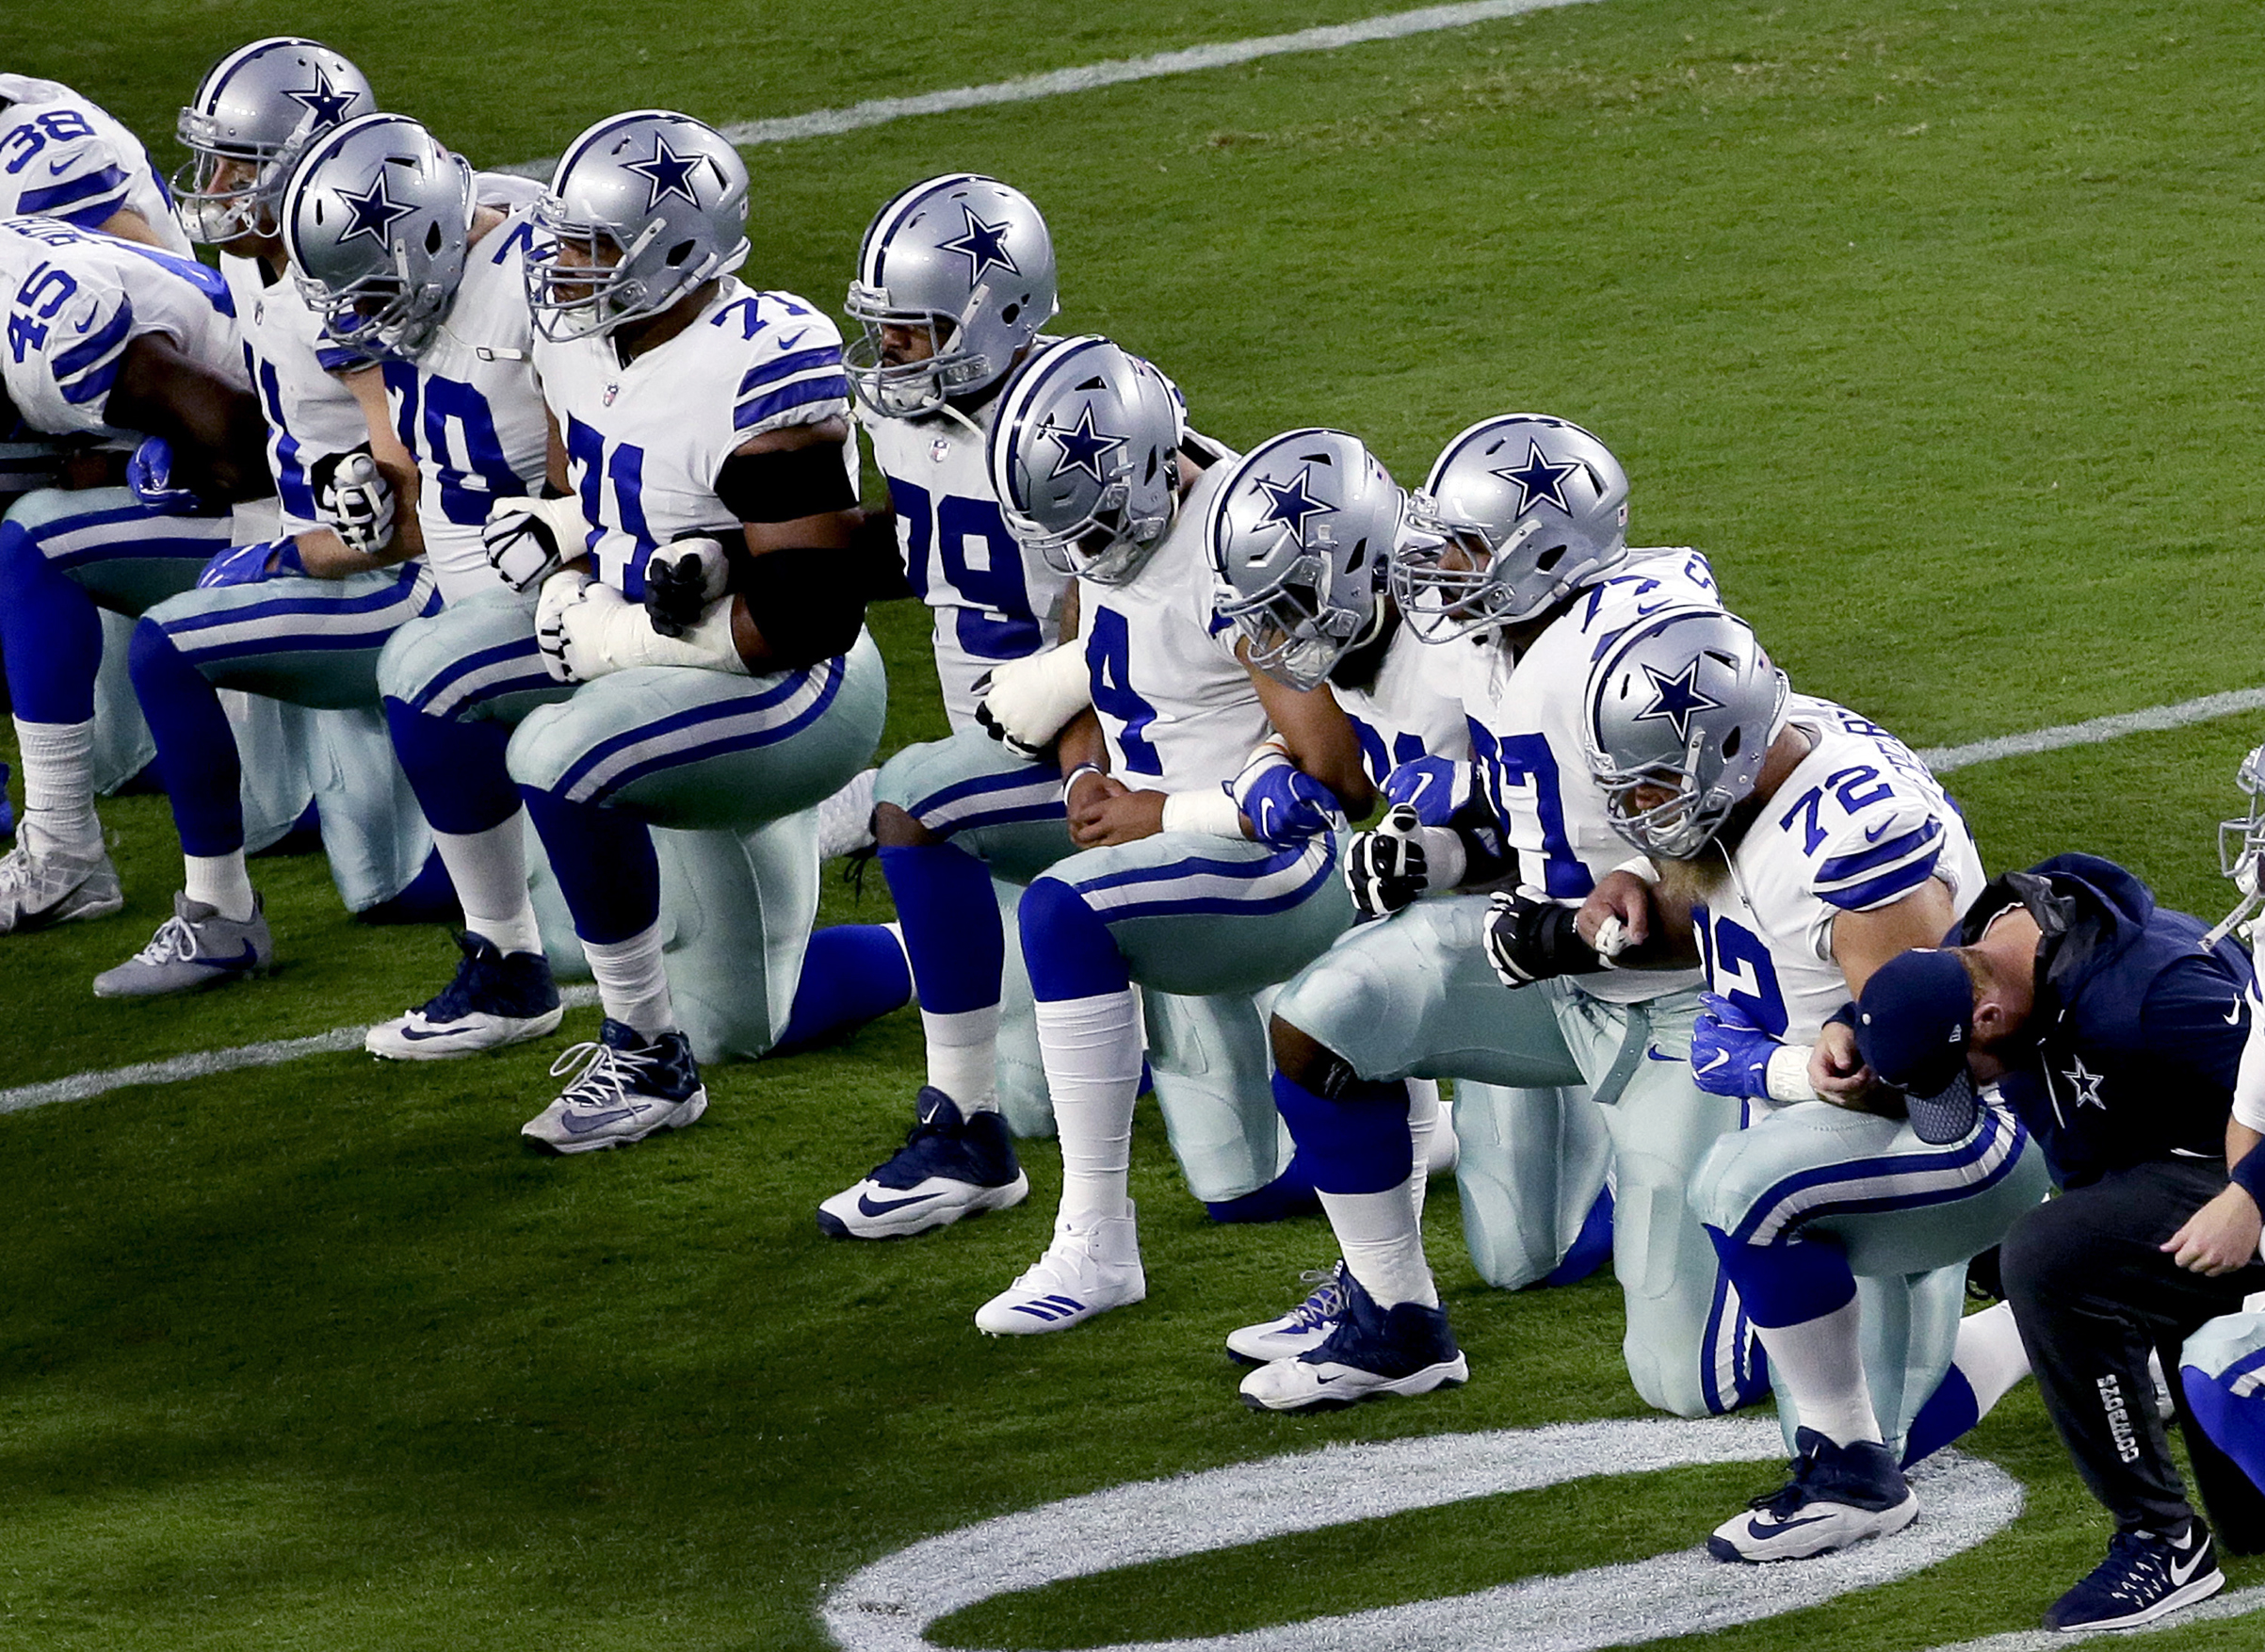 The Dallas Cowboys take a knee prior to the national anthem prior to an NFL football game against the Arizona Cardinals, Sept. 25, 2017, in Glendale, Ariz.